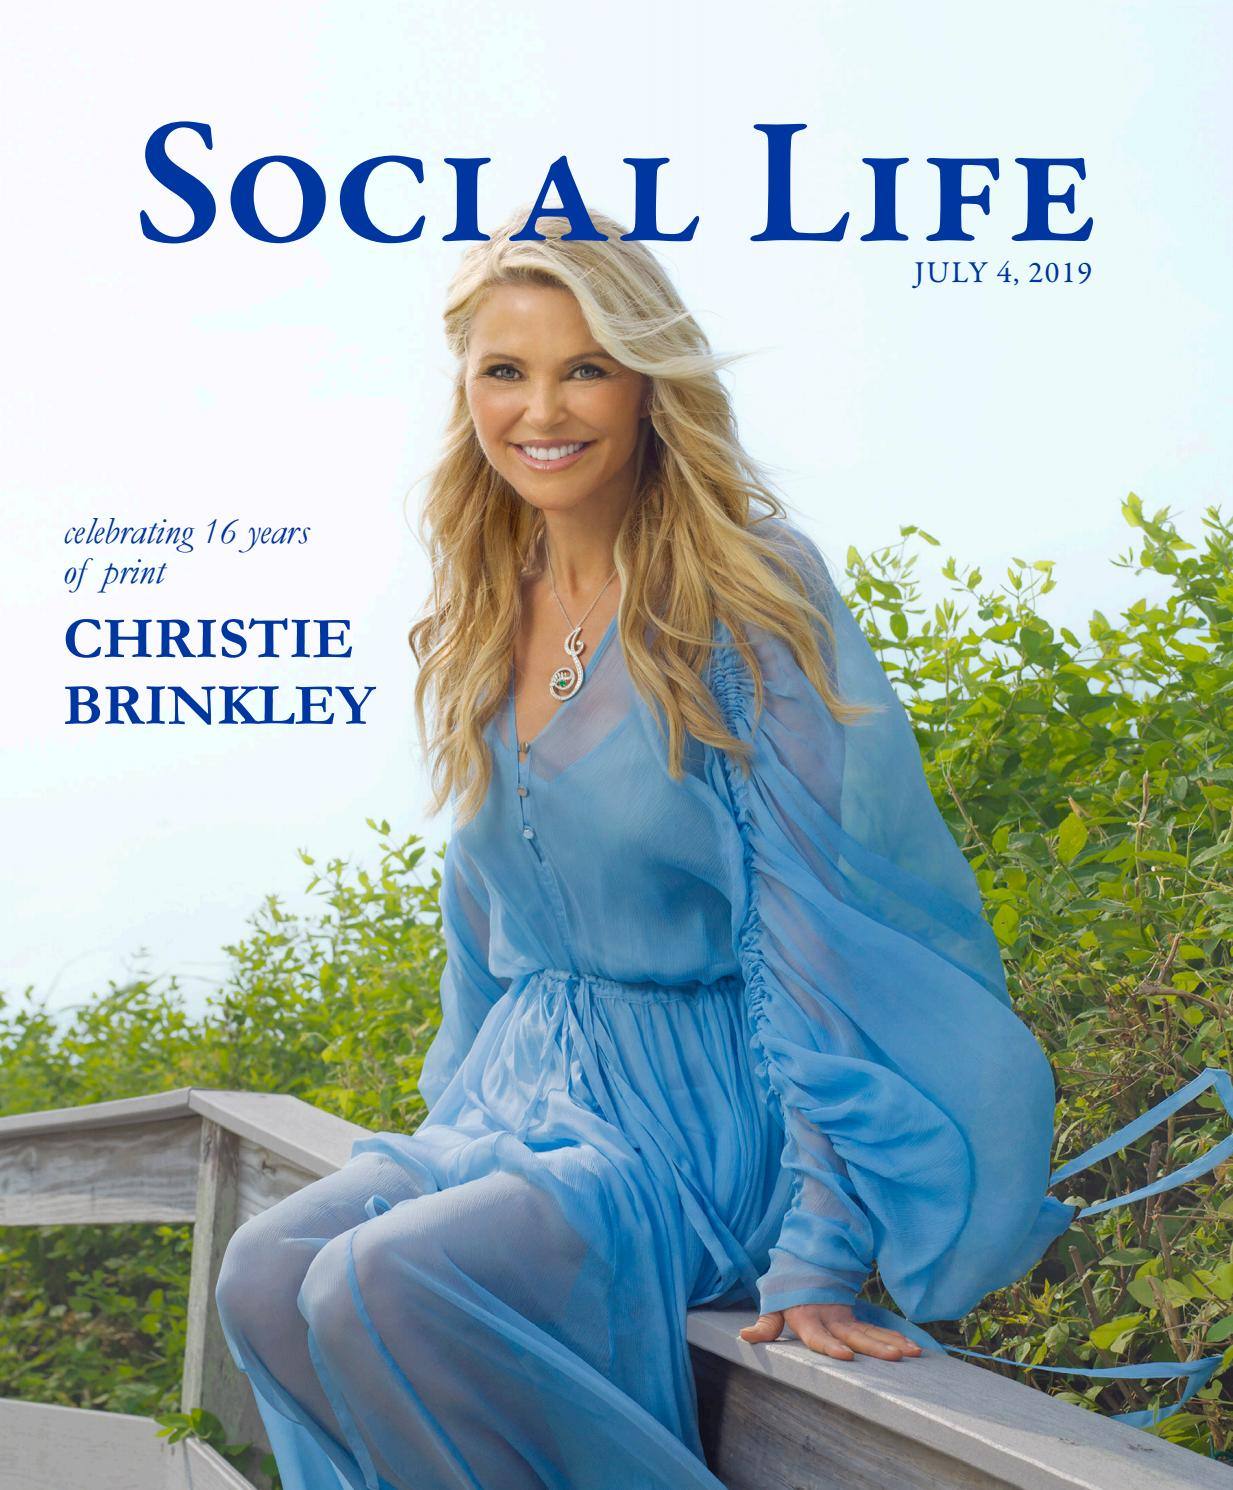 d065282a1 Social Life - July 2019 - Christie Brinkley by Social Life Magazine - issuu